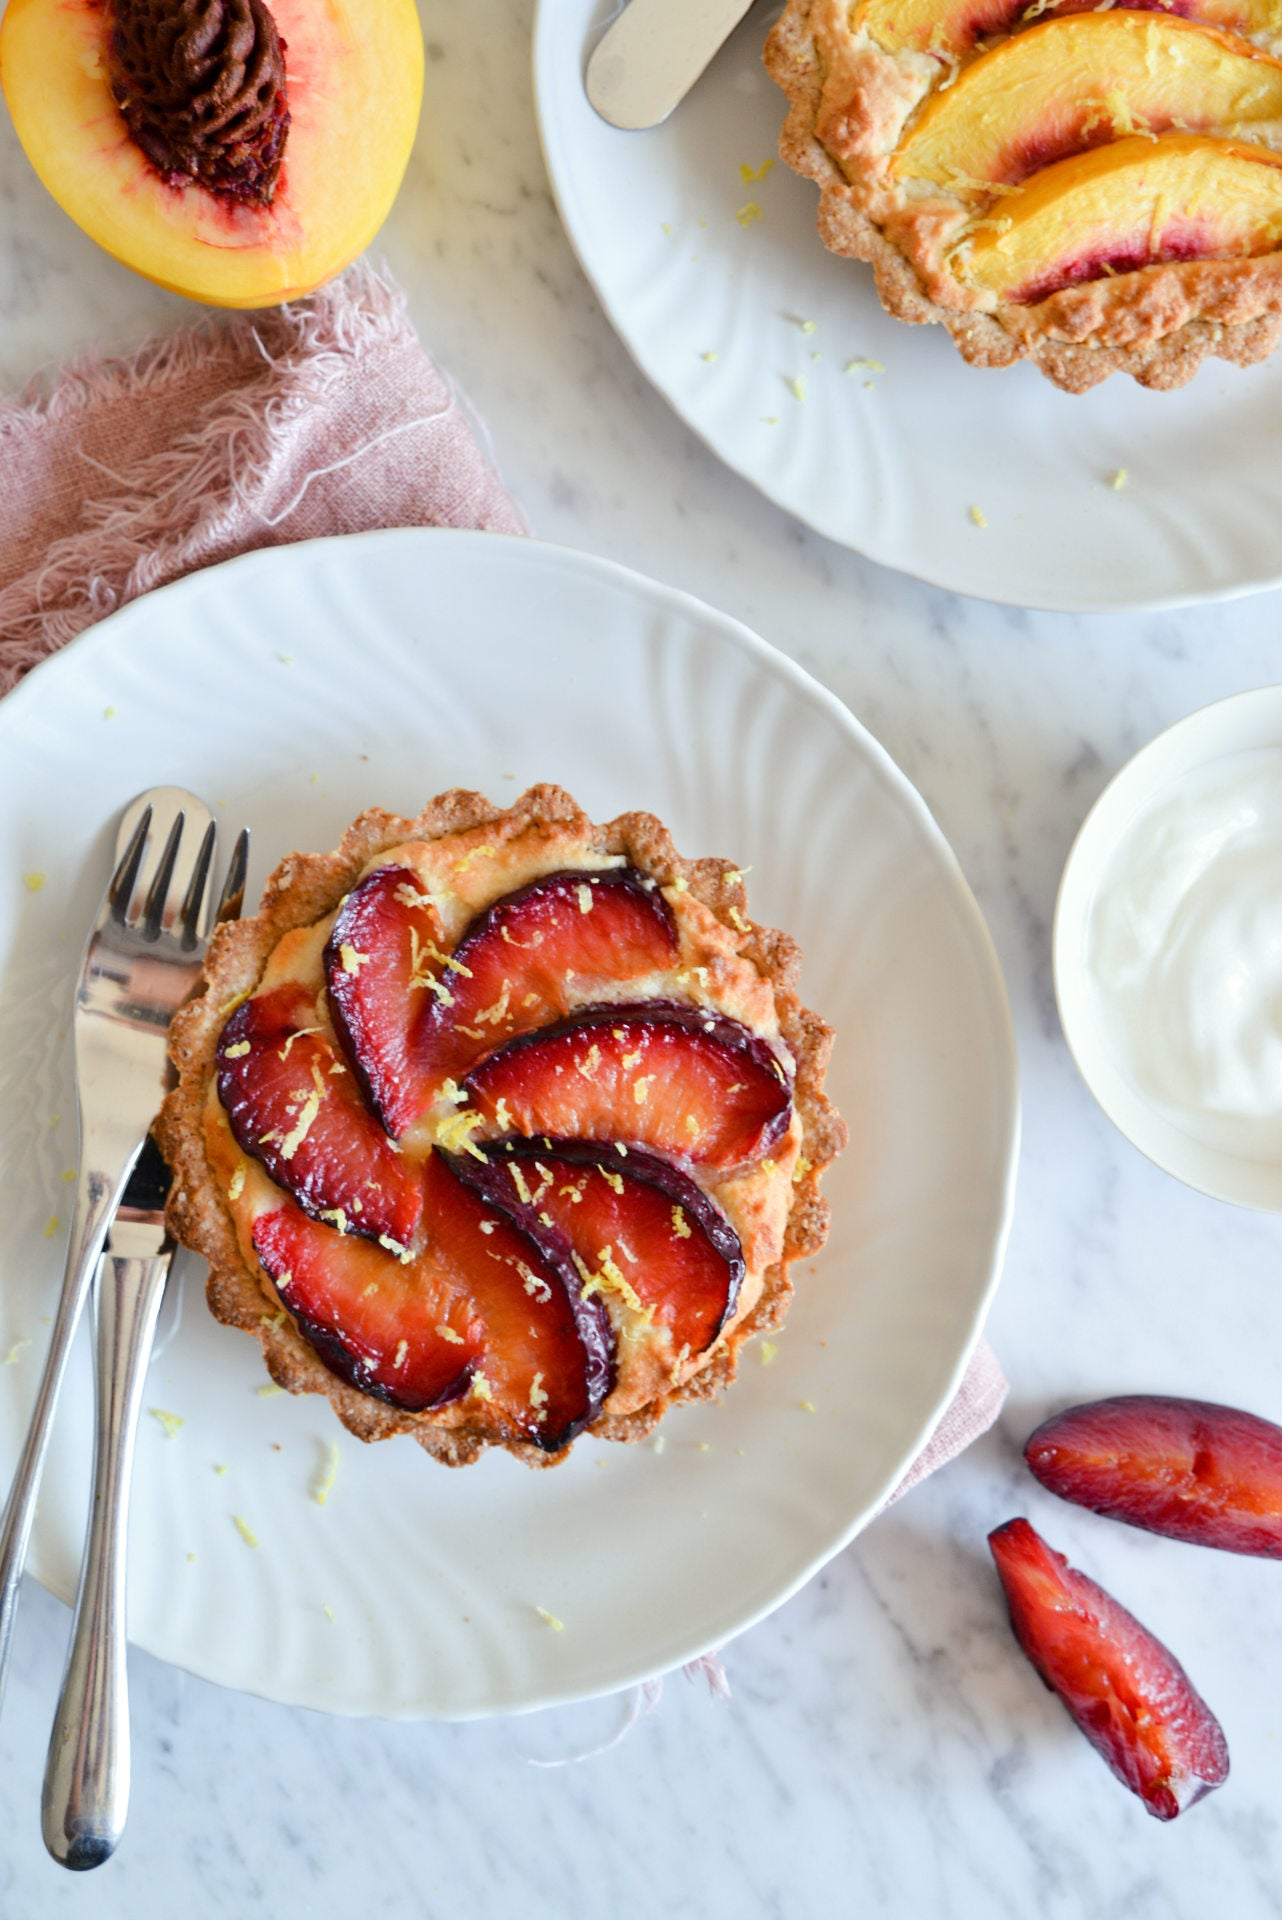 Frangipane Tart with Plums Recipe. Using Molino Pasini Primitiva Flour